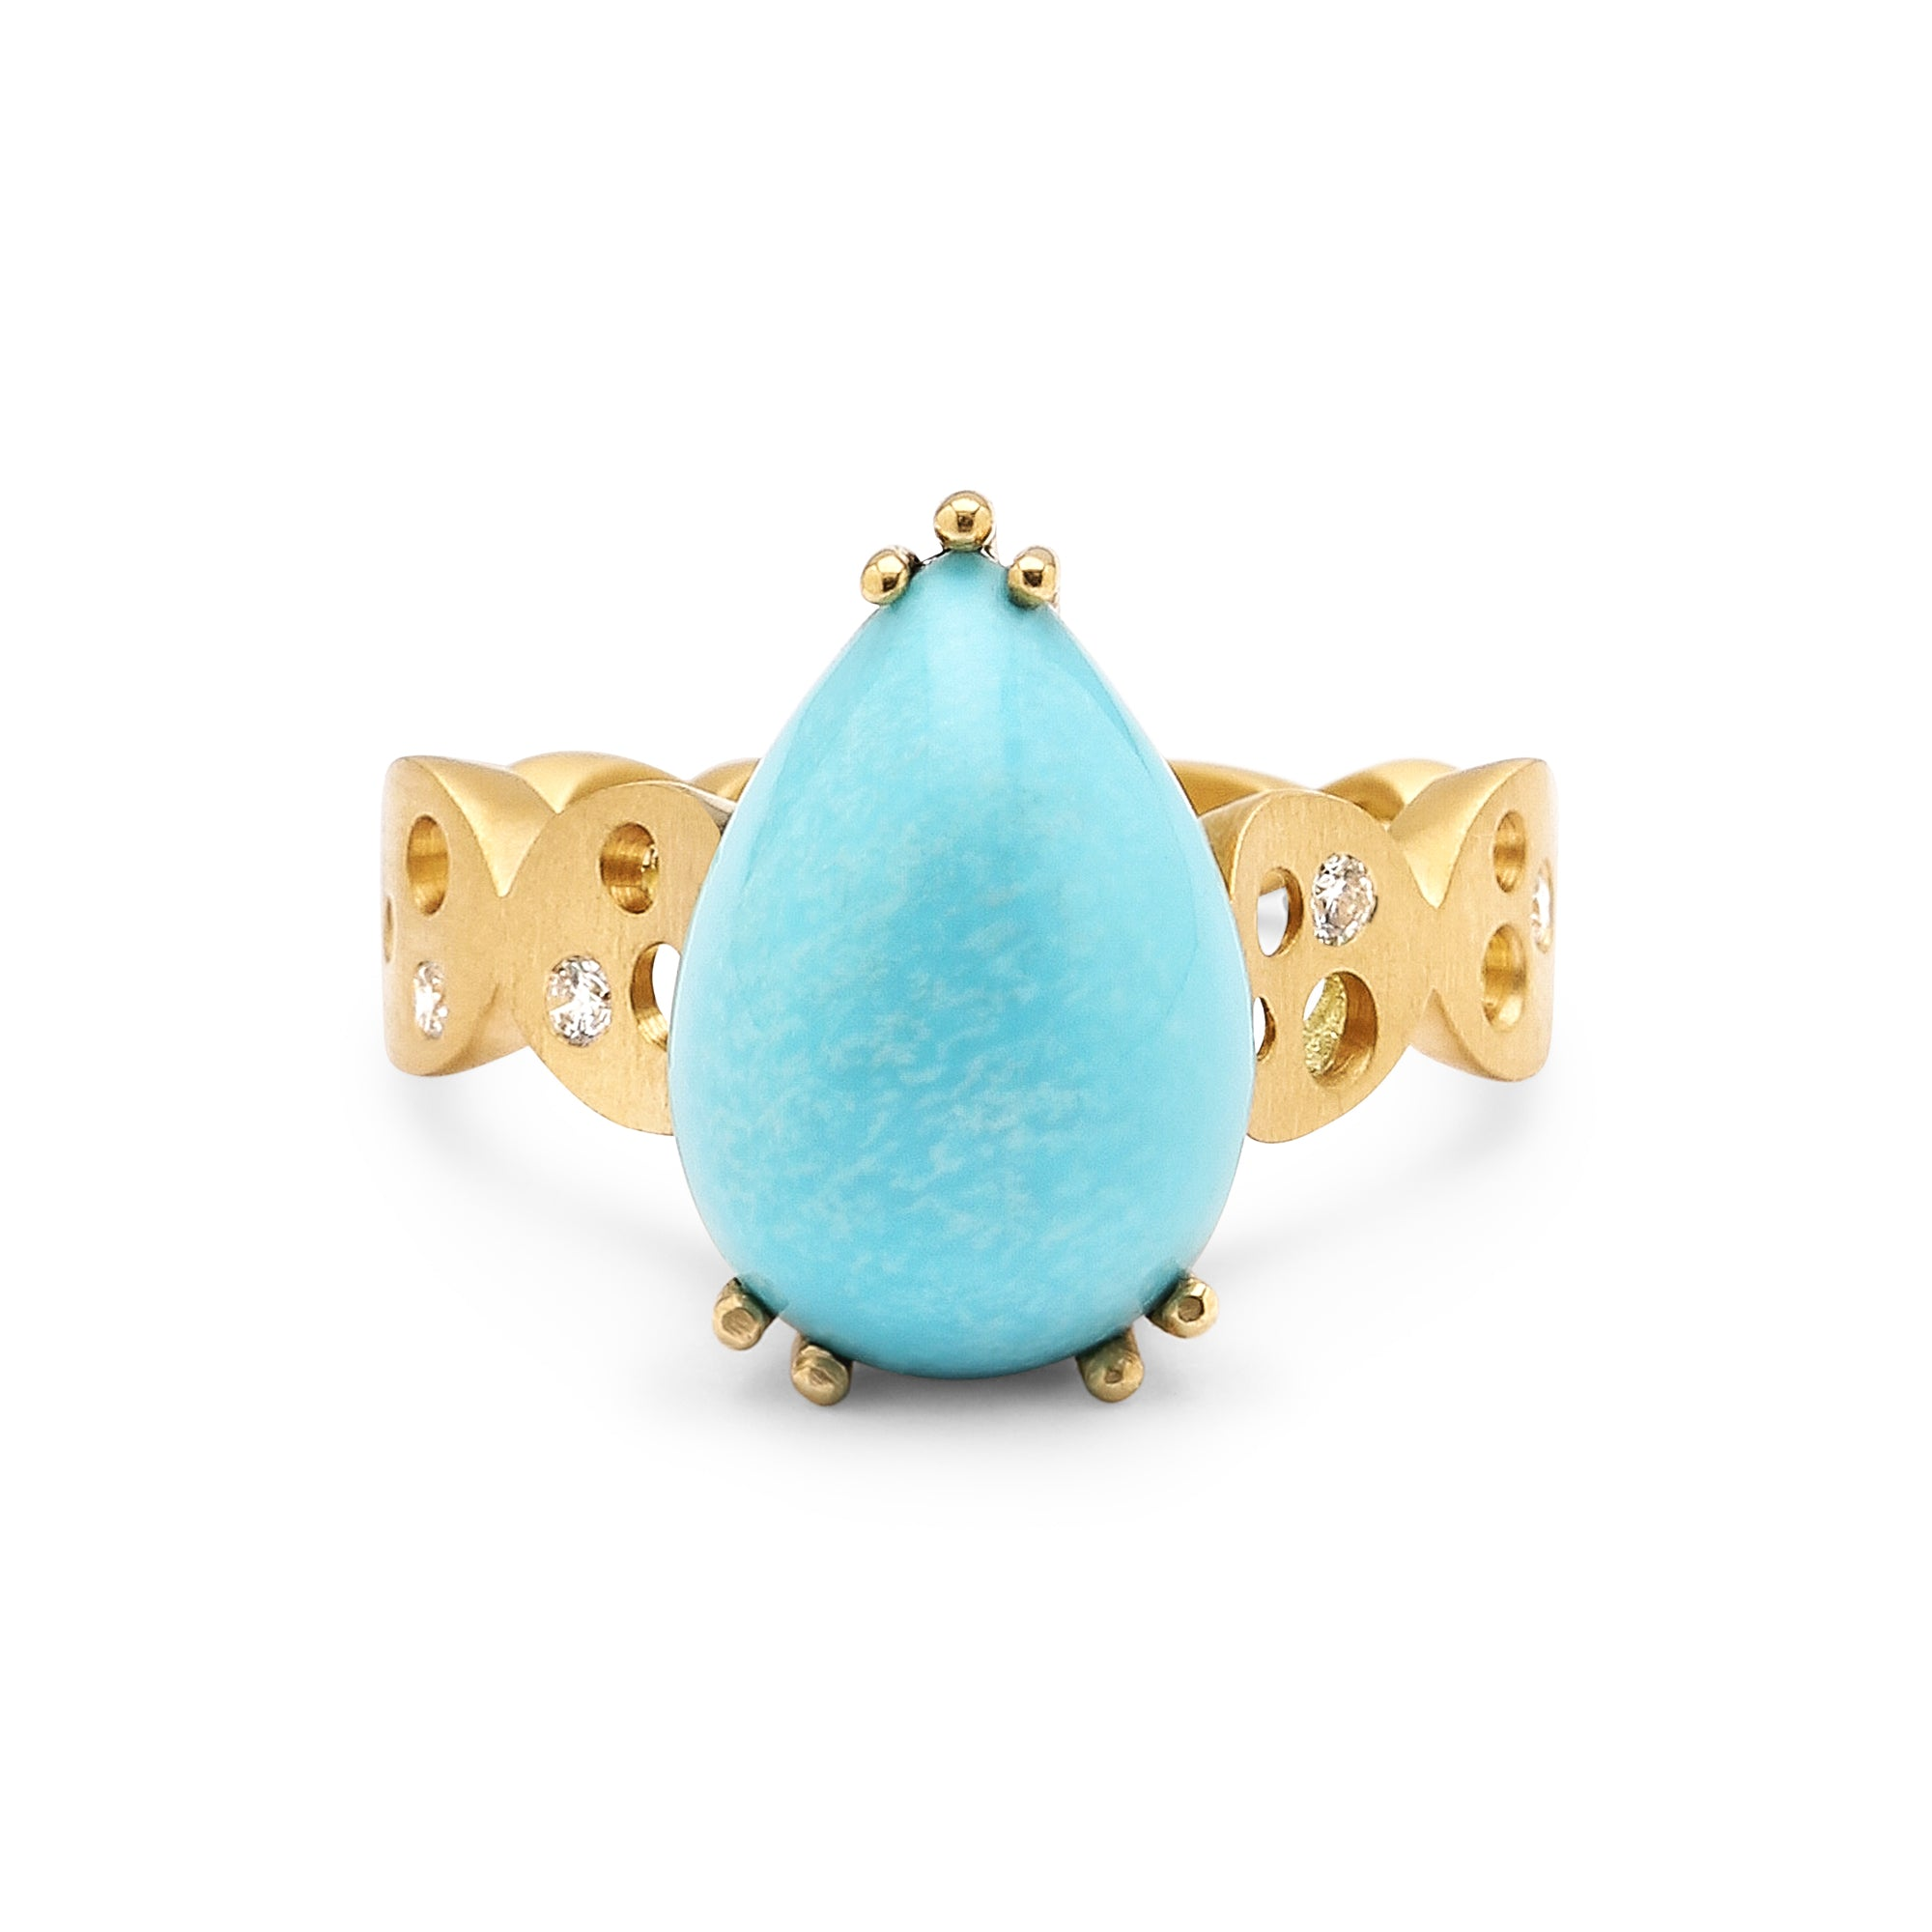 Pear-Shaped Sleeping Beauty Turquoise & Coin Band Ring